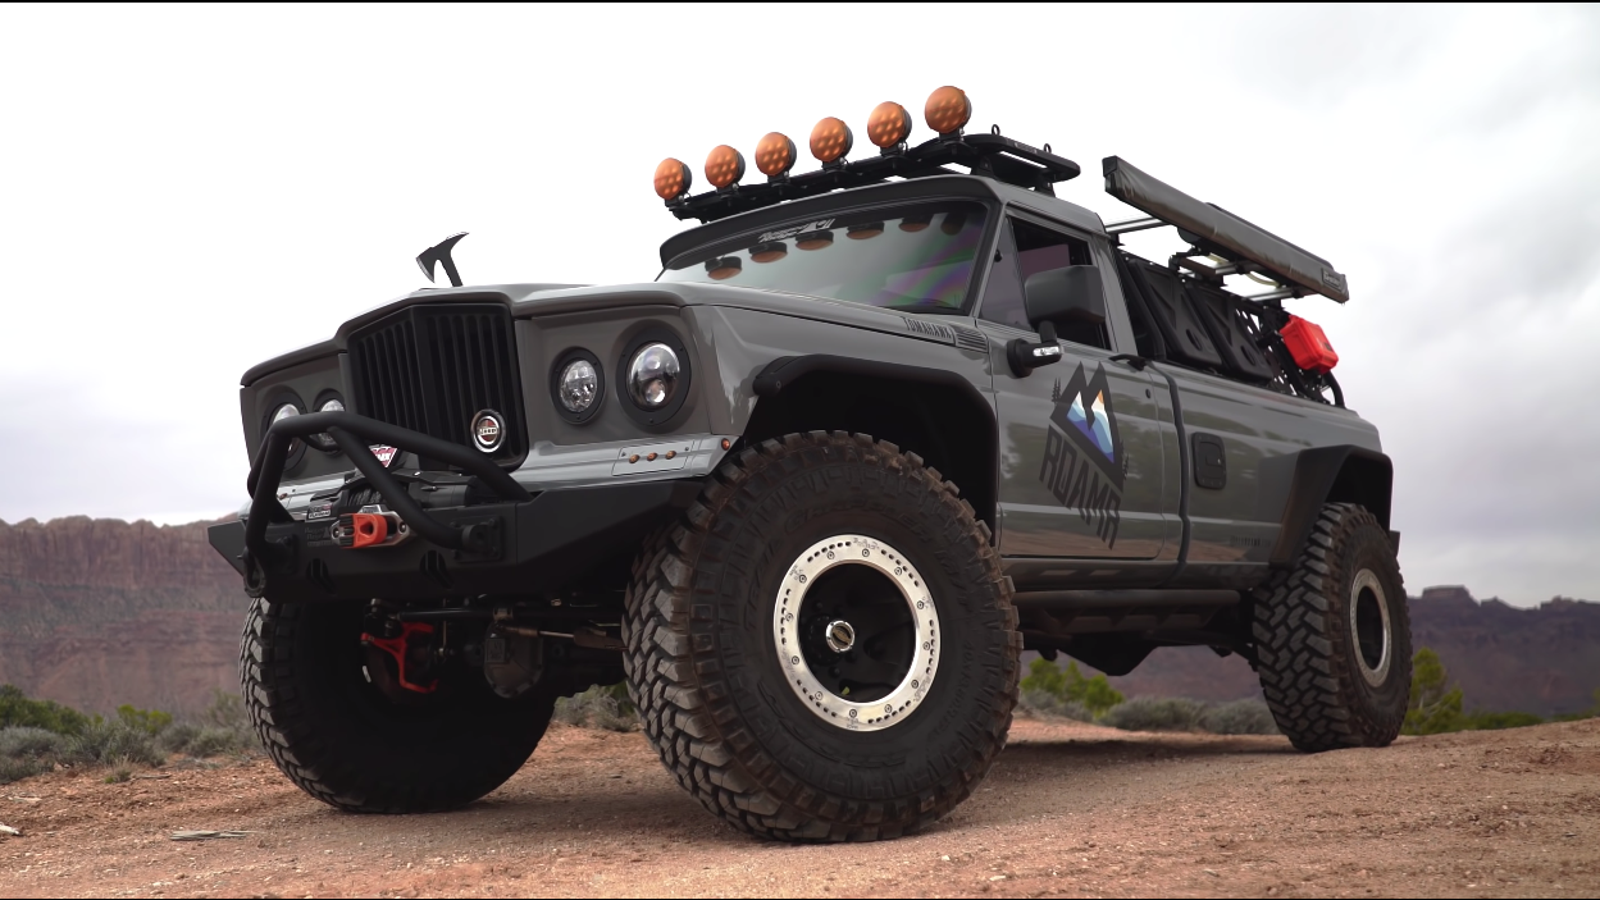 Here Are Two Very Different Ways to Build an Ultimate Overland Jeep